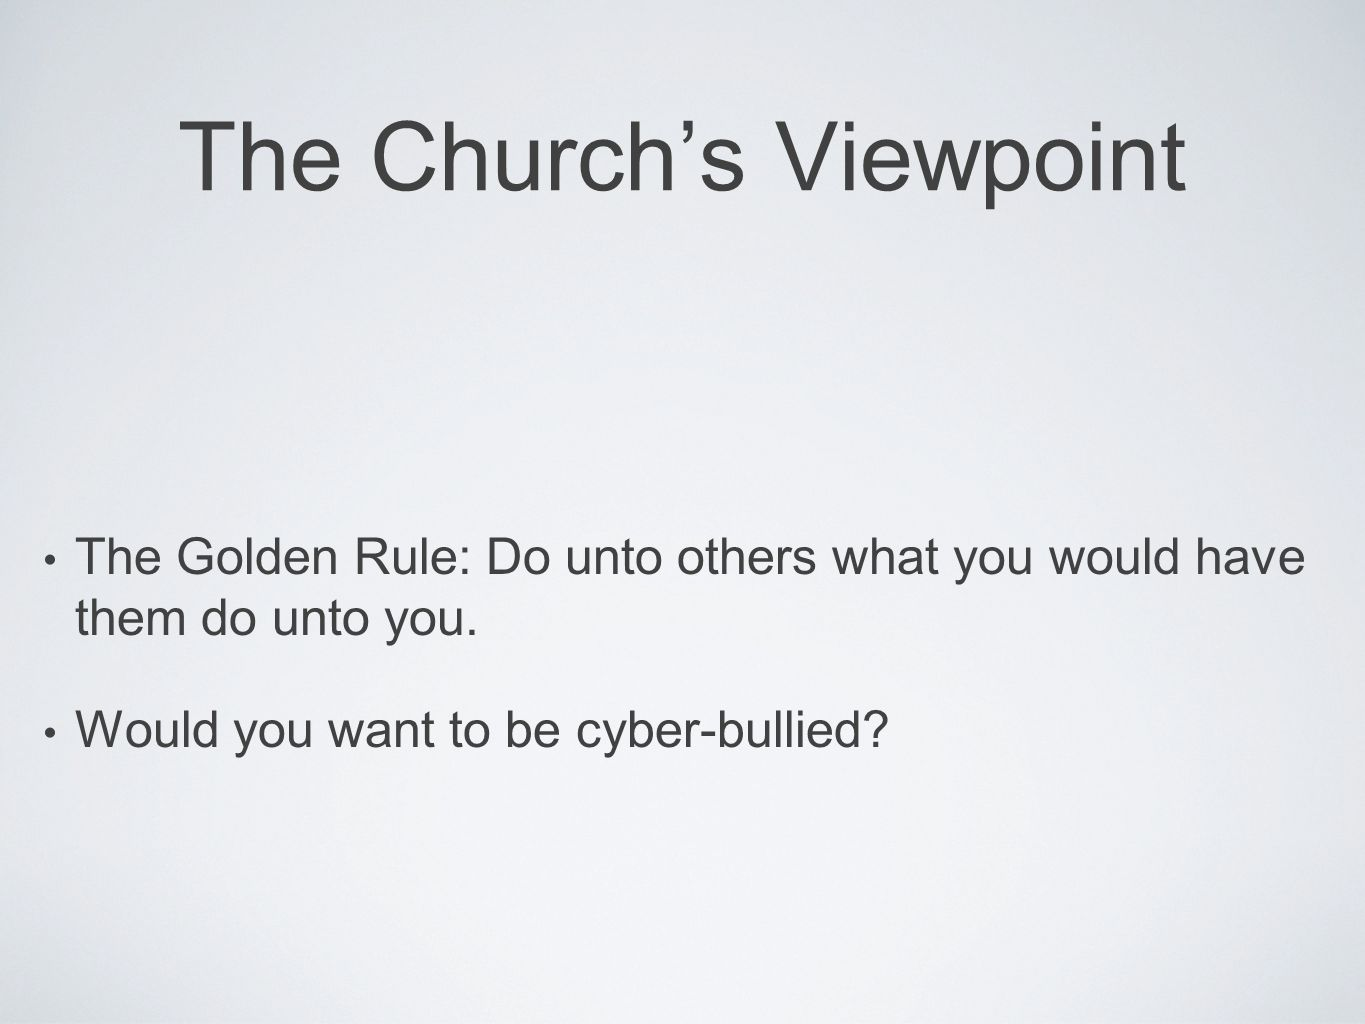 The Church's Viewpoint The Golden Rule: Do unto others what you would have them do unto you.